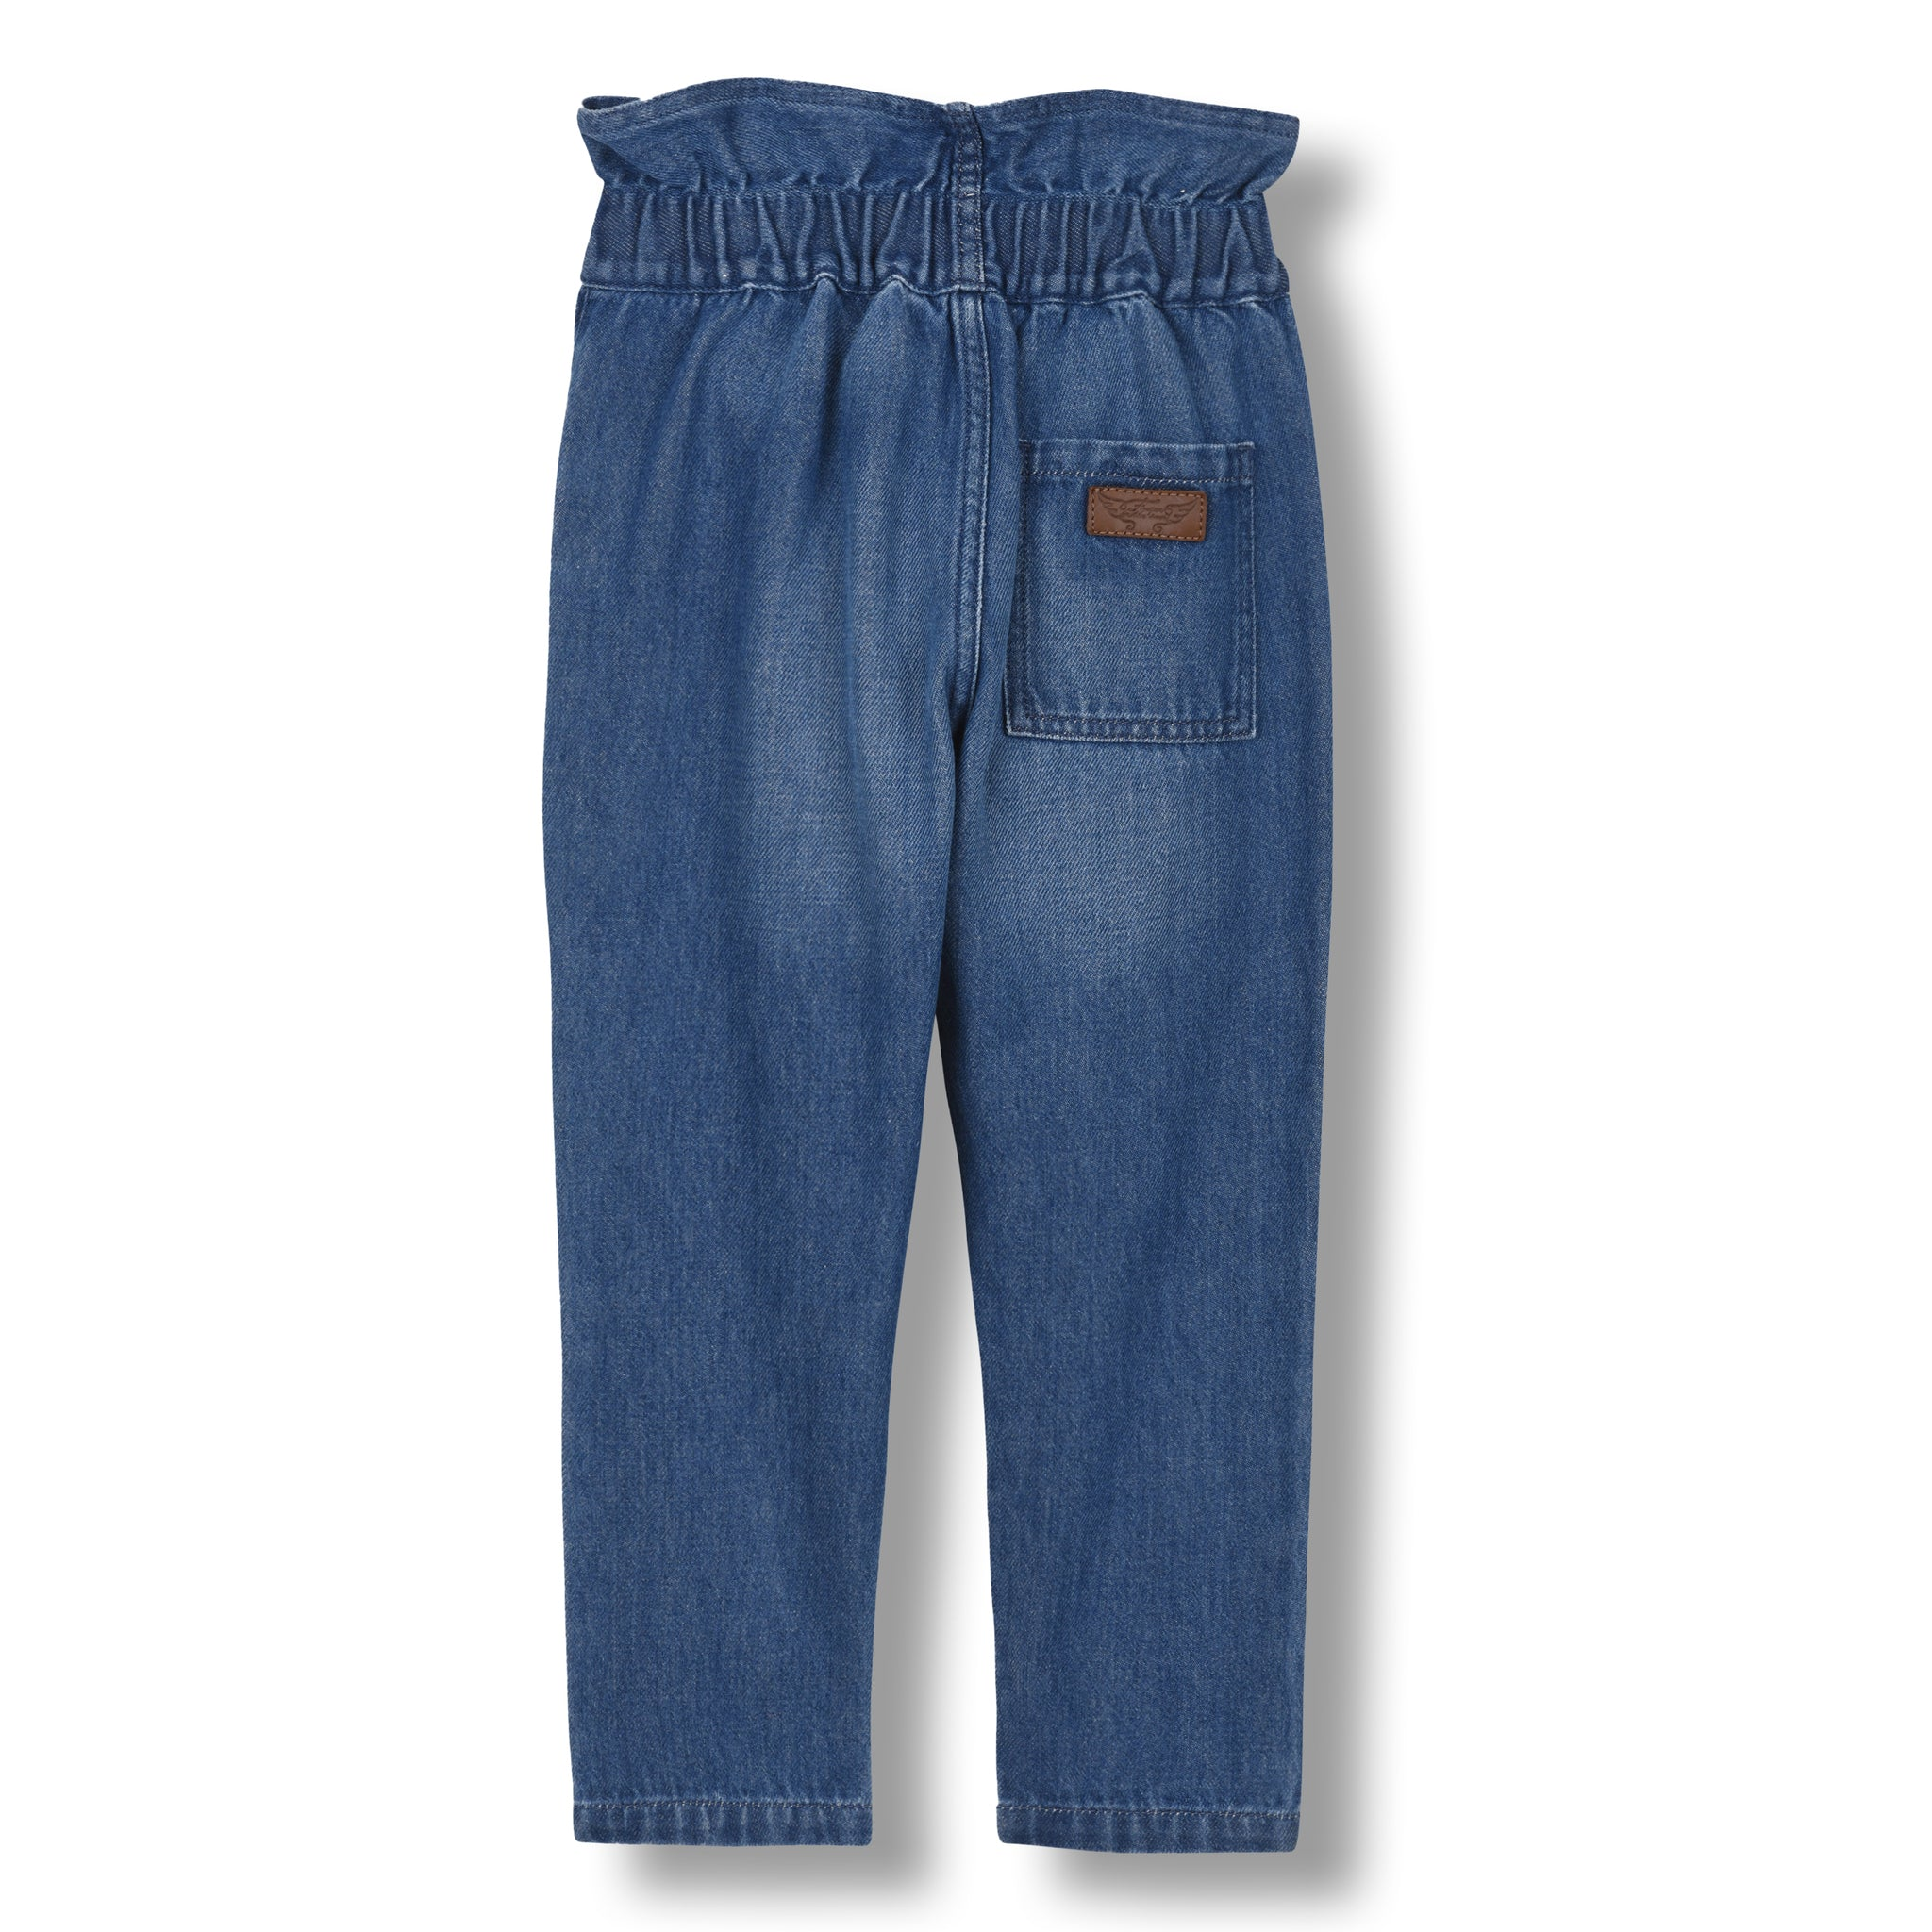 LIZZY Medium Blue - Elasticated Paper Bag Pant 2